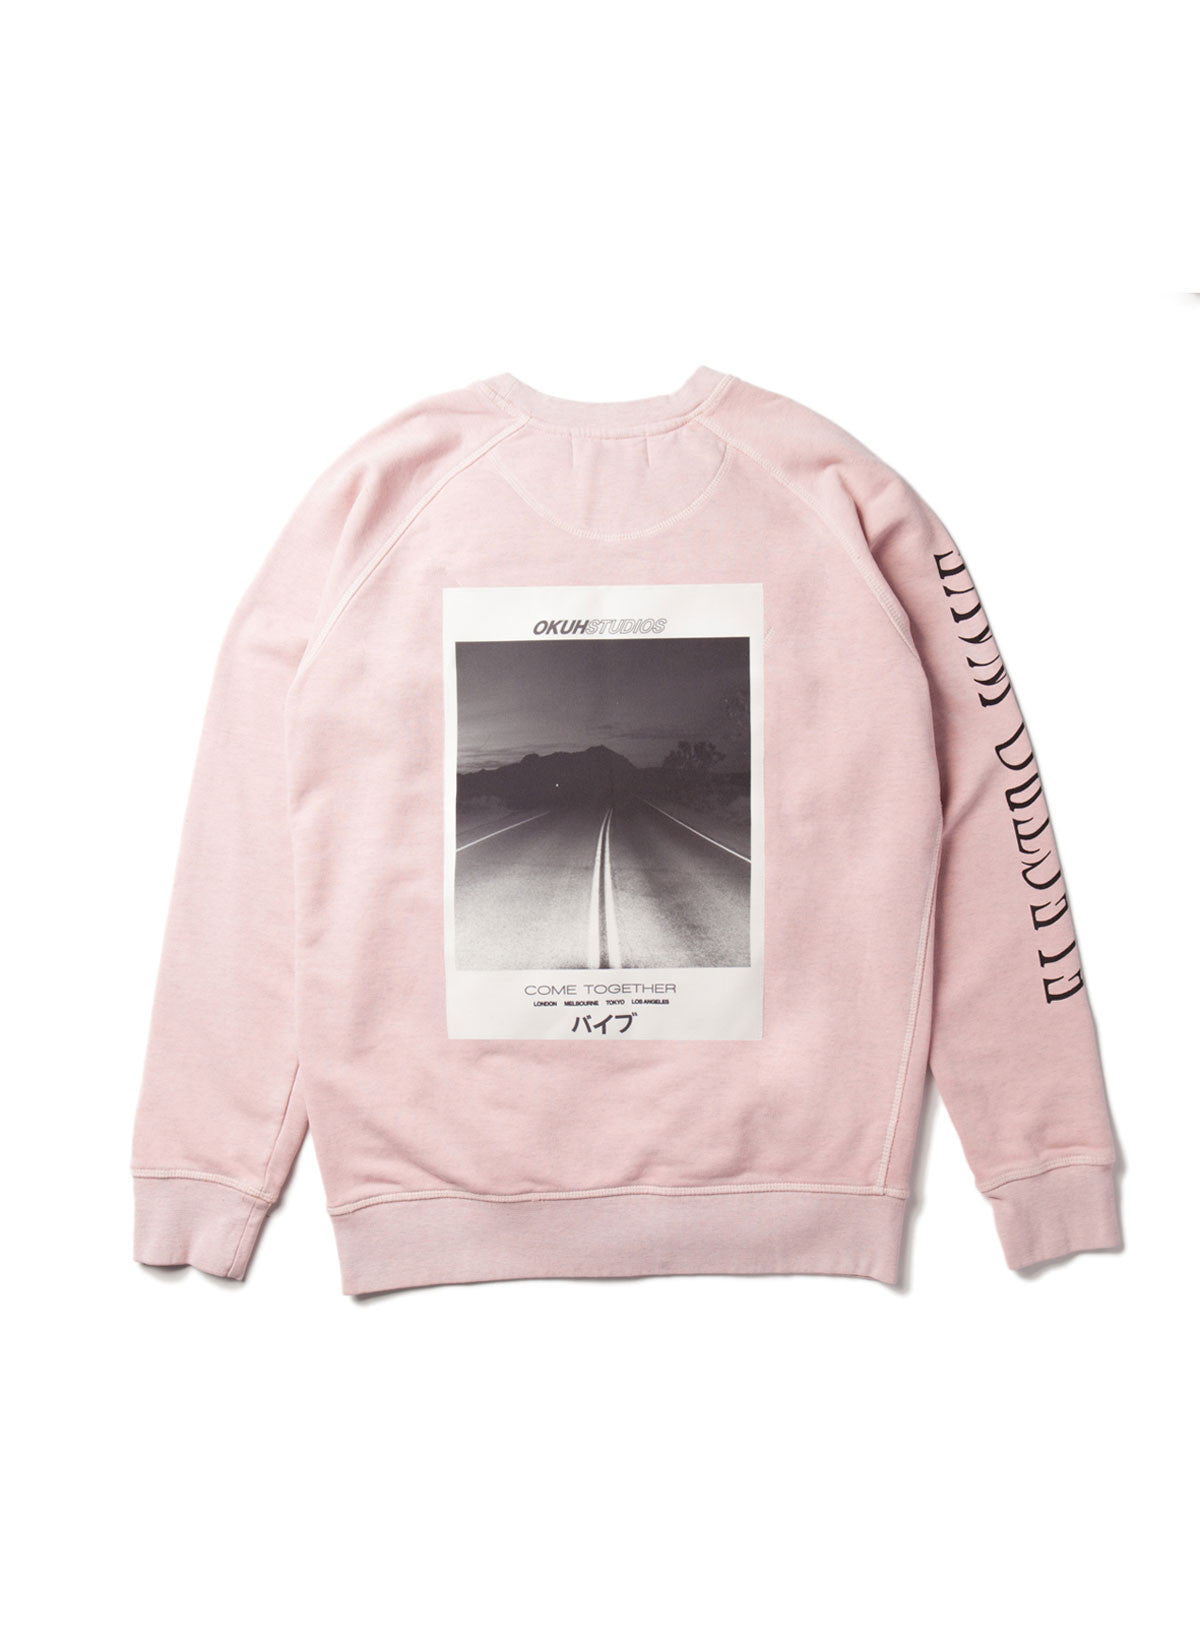 Electrowave Pink Sweatshirt by Okuh Studios, mens streetwear fashion brand, Back